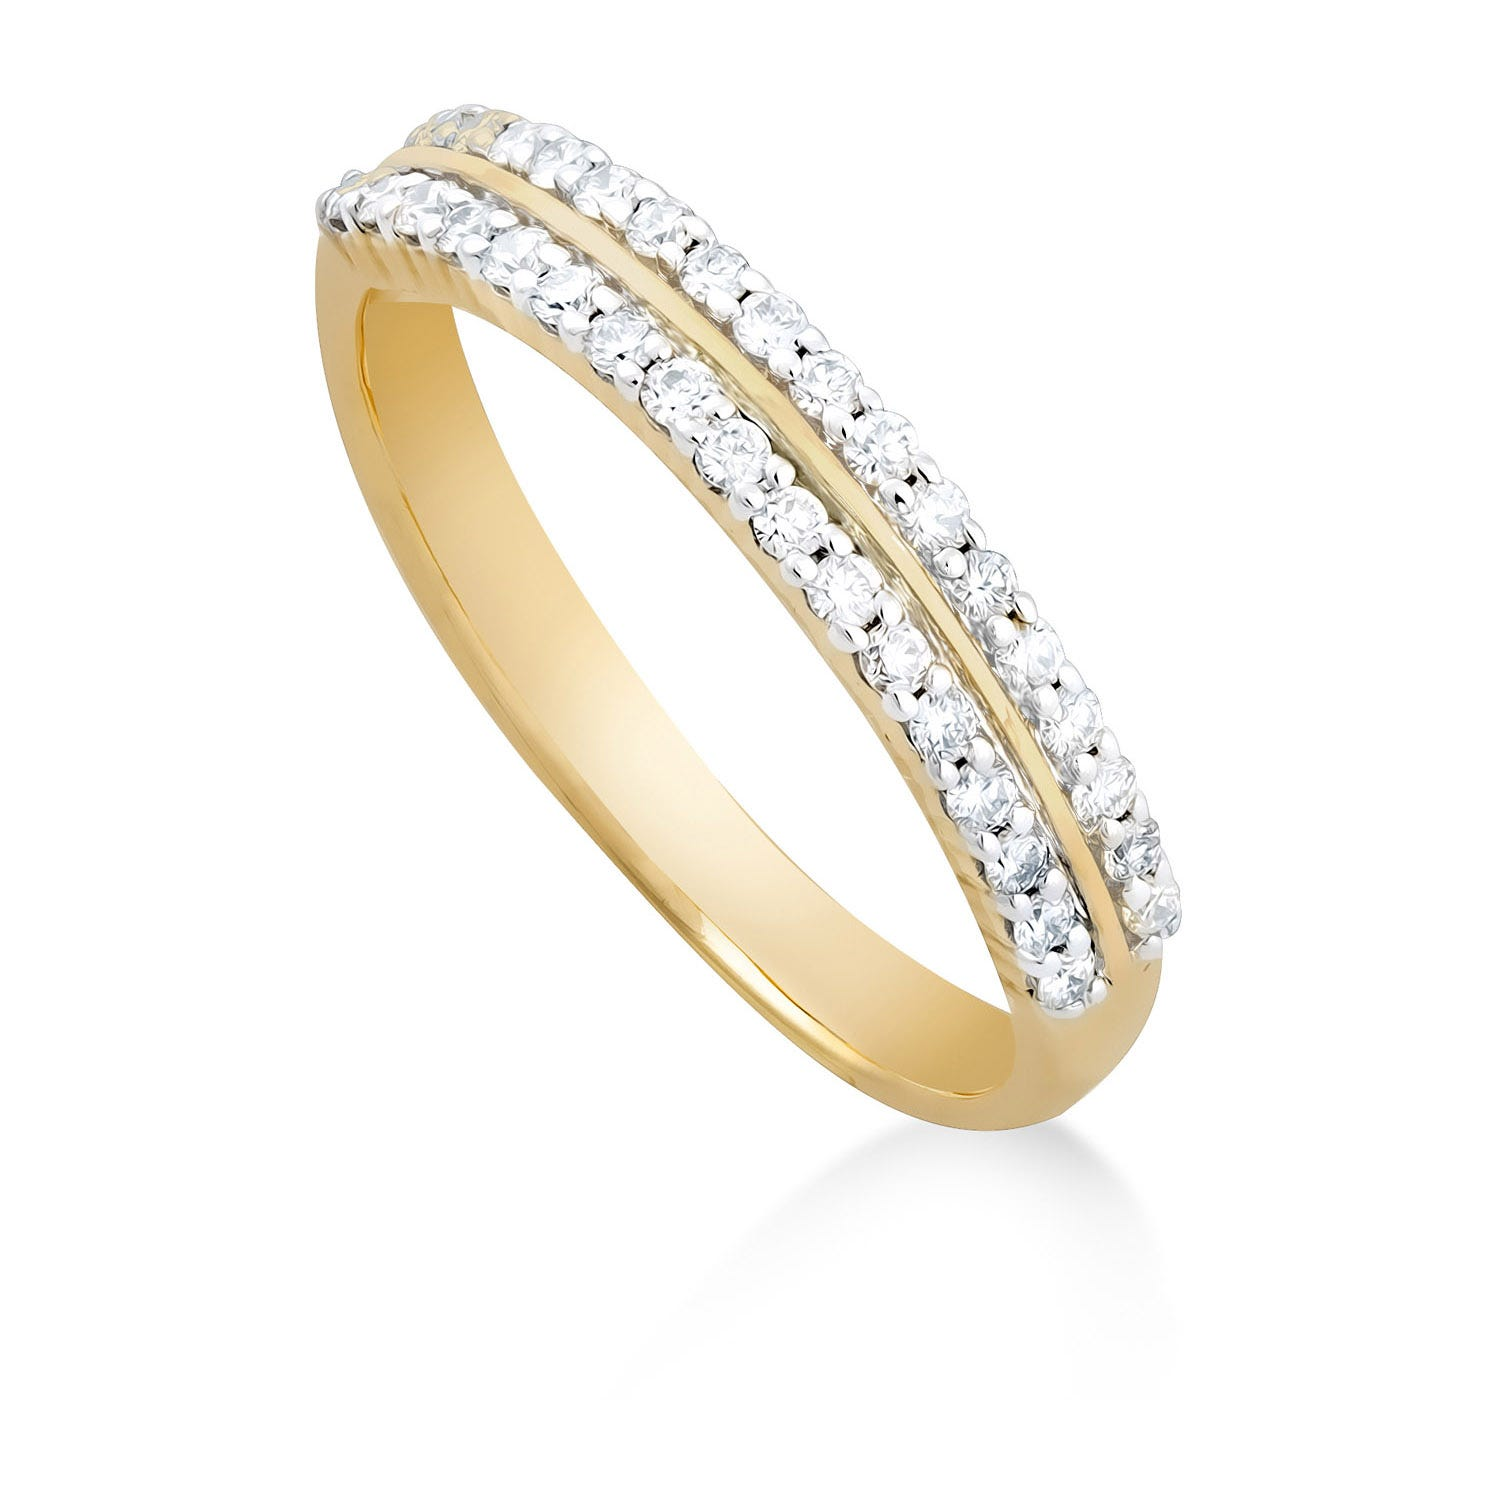 Ladies' 9ct gold 0.25 carat diamond two row wedding ring